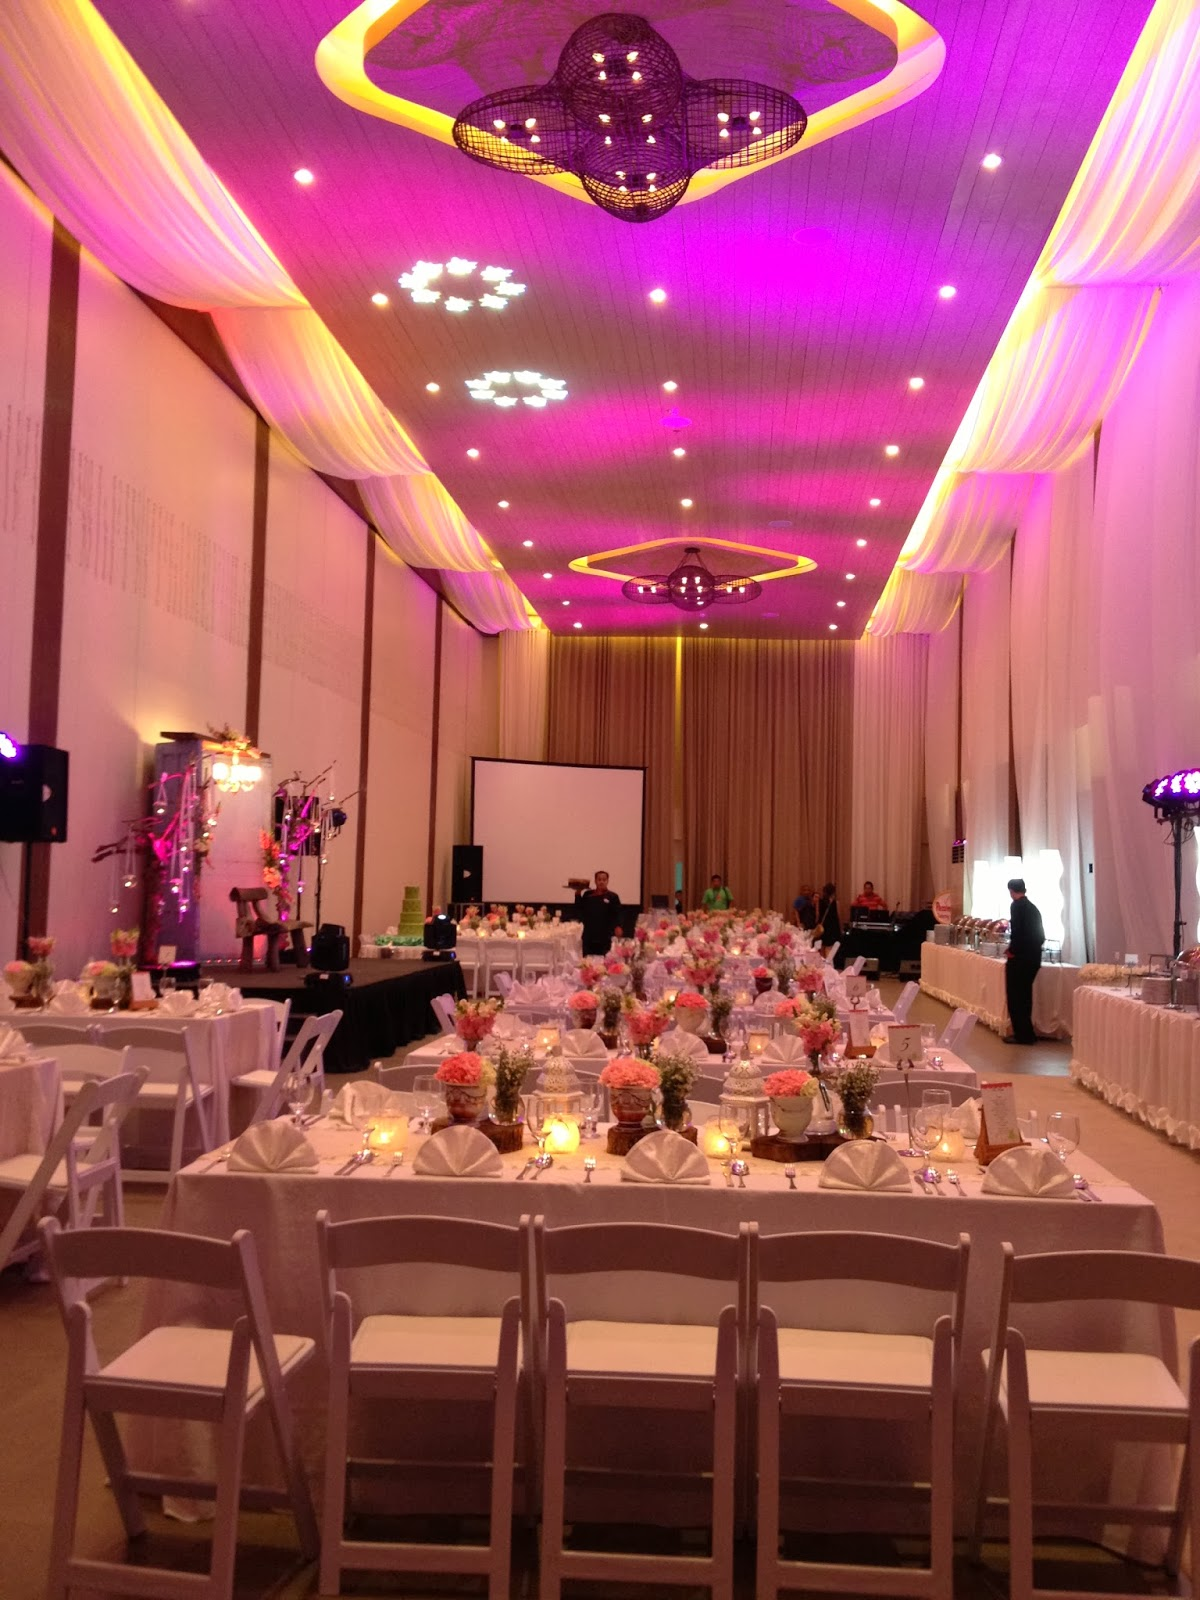 Away From Diamond Hotel Counting The Traffic So It Is Not That Far Blue Leaf Filipinas Lovely Venue And Looks Very Soft Perfect For